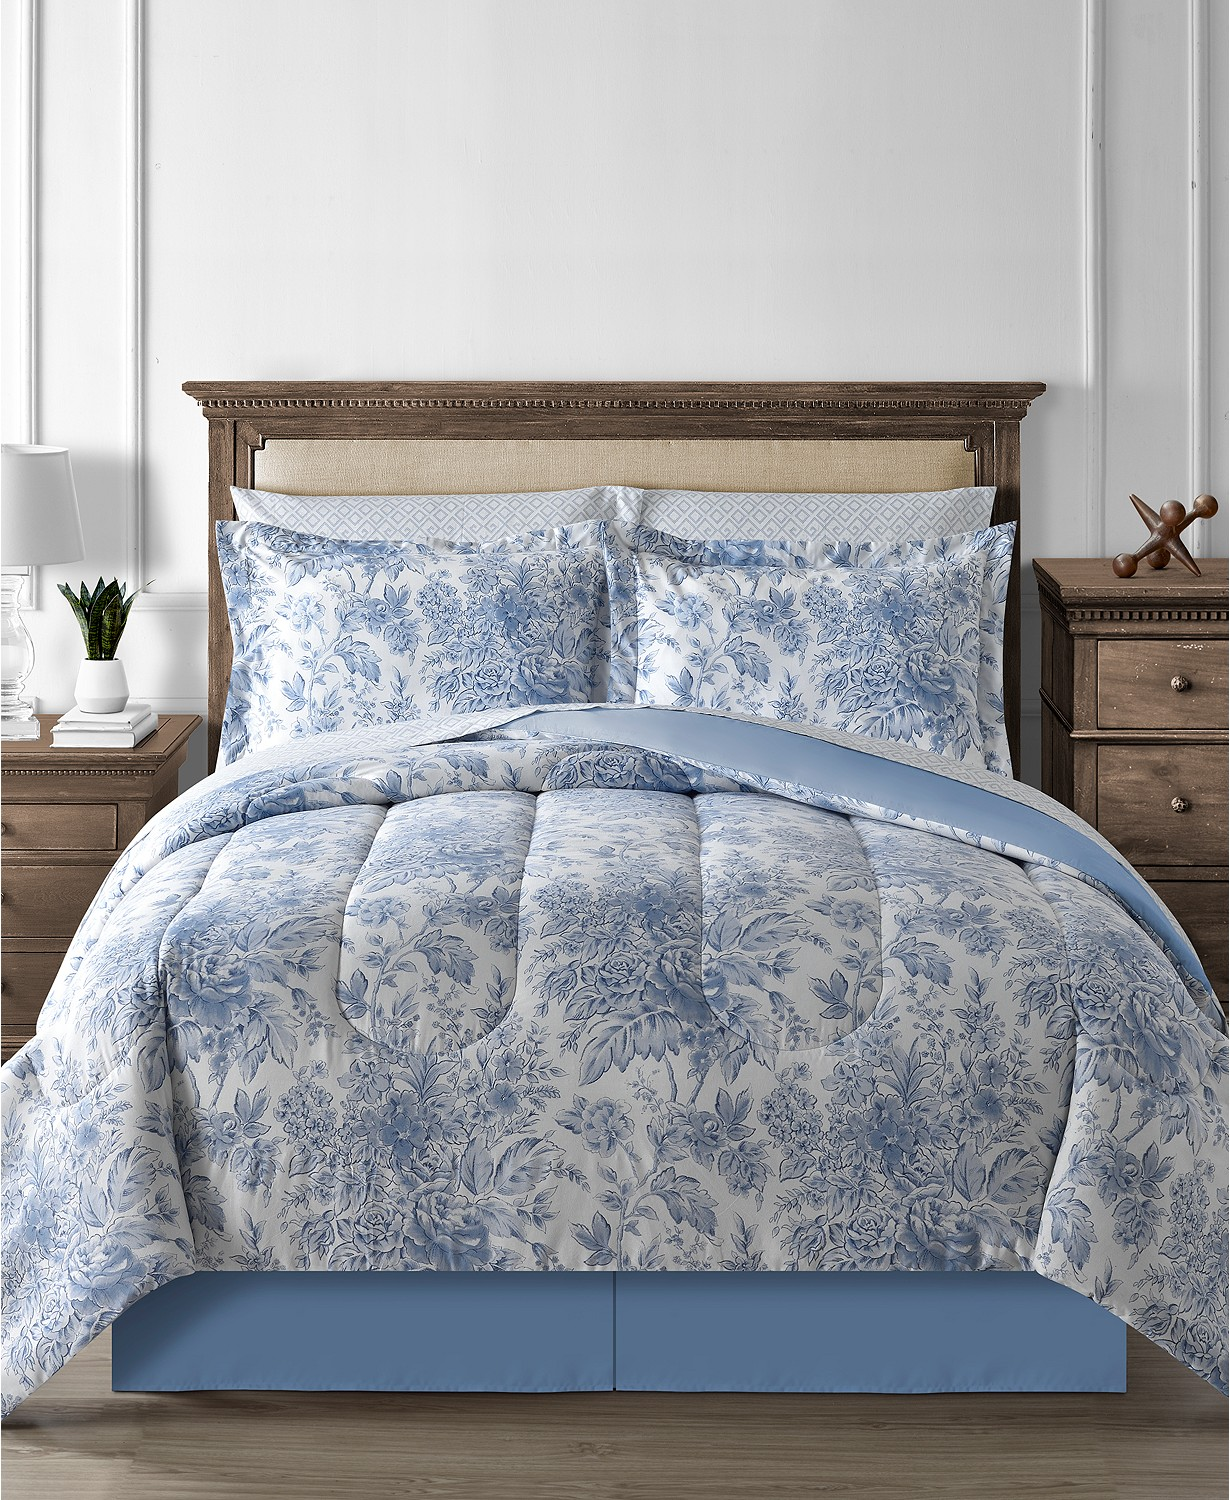 Fairfield Floral Toile 8-Pc. King Reversible Comforter Set